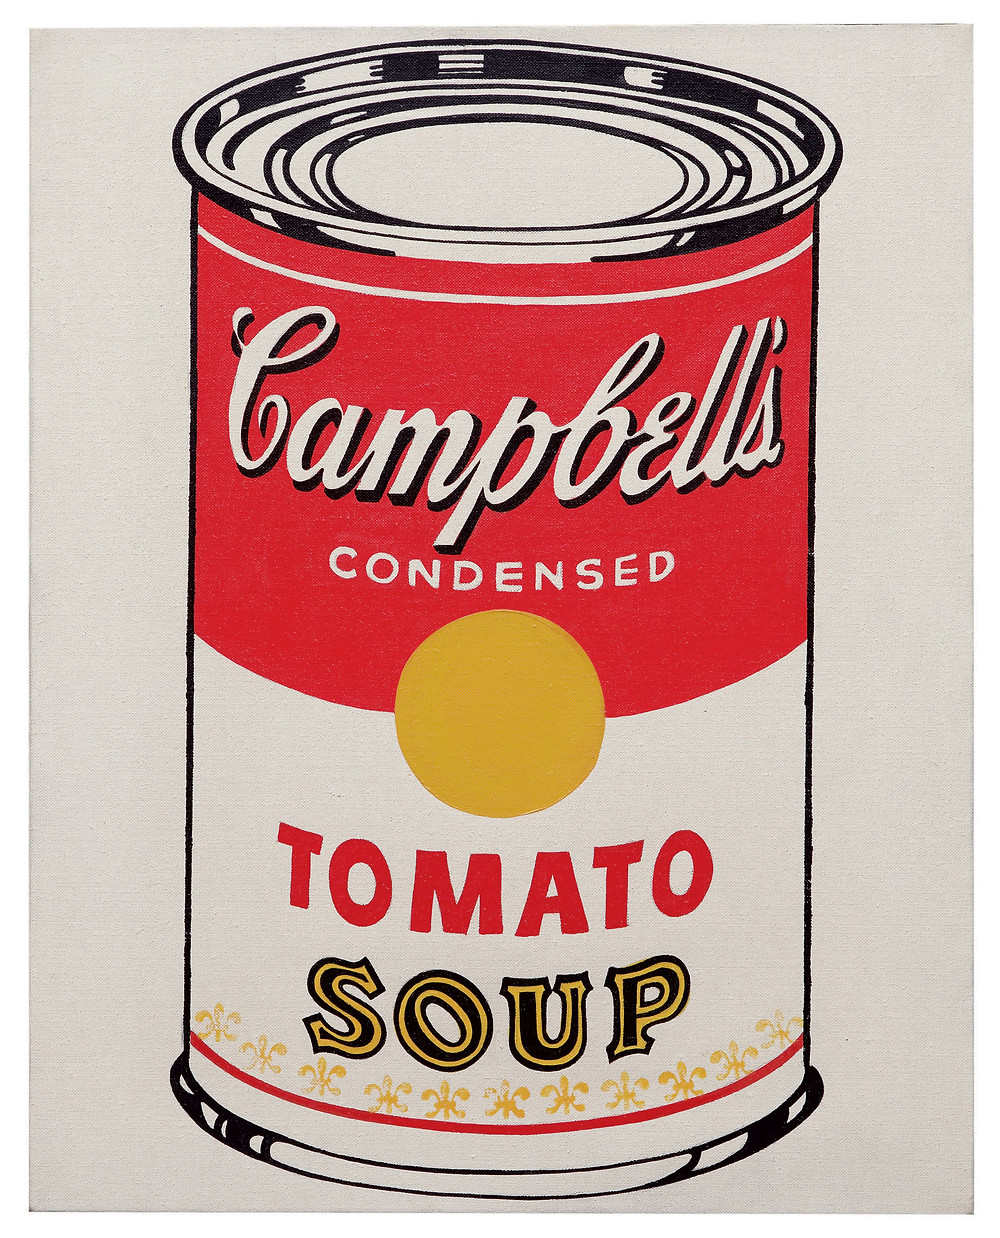 Andy Warhol, 'Tomato from Campbell's Soup I', 1968